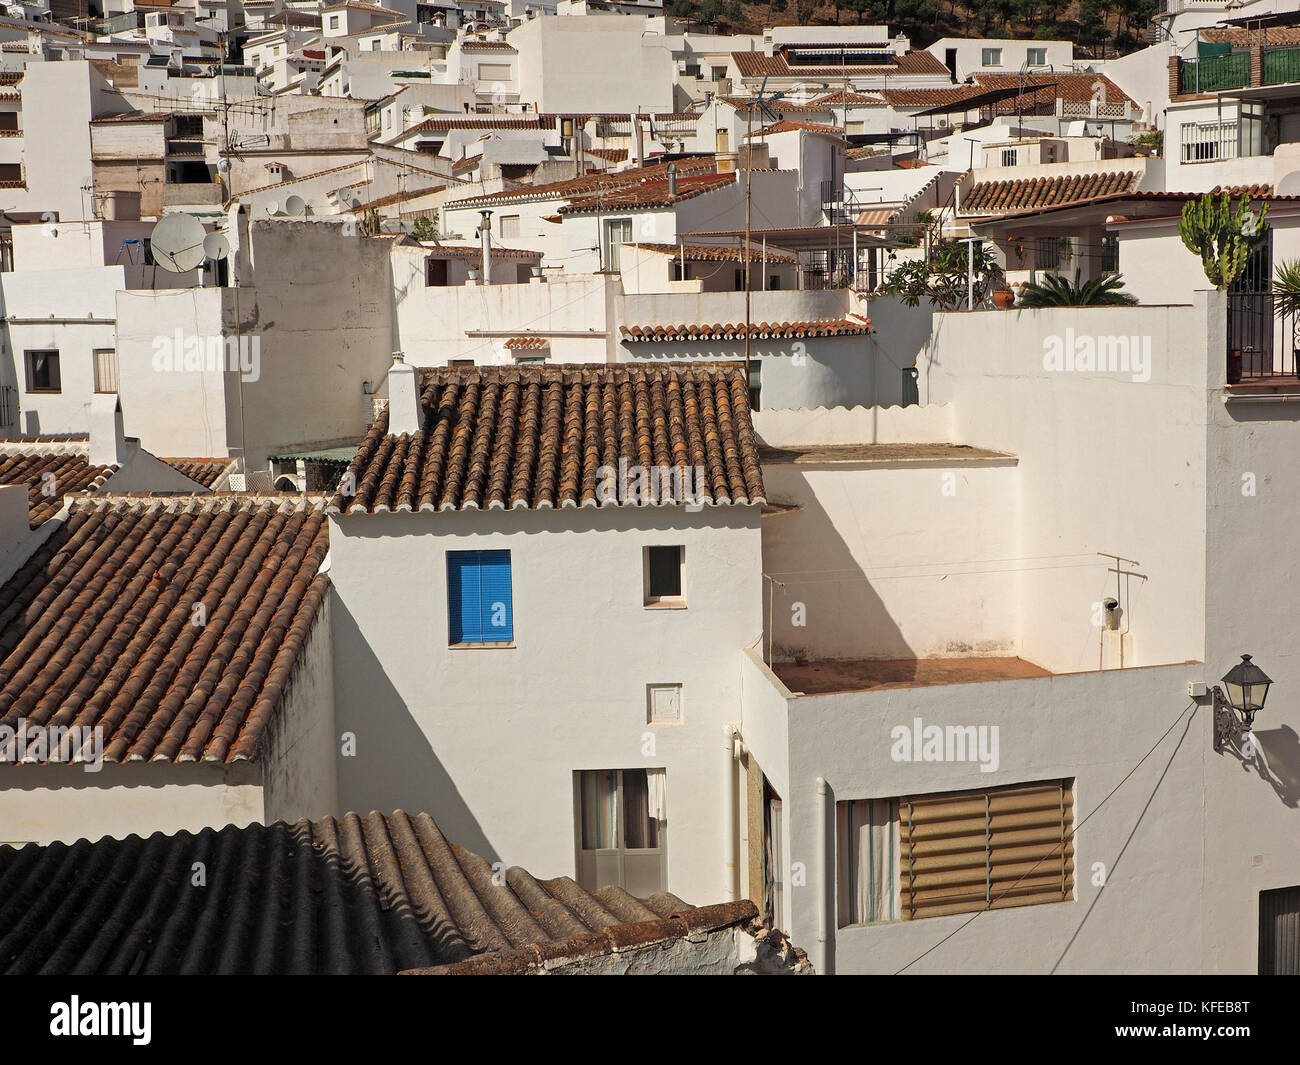 a blue shuttered window stands out from the white walls and brown rooftops of buildings in the picturesque historic - Stock Image